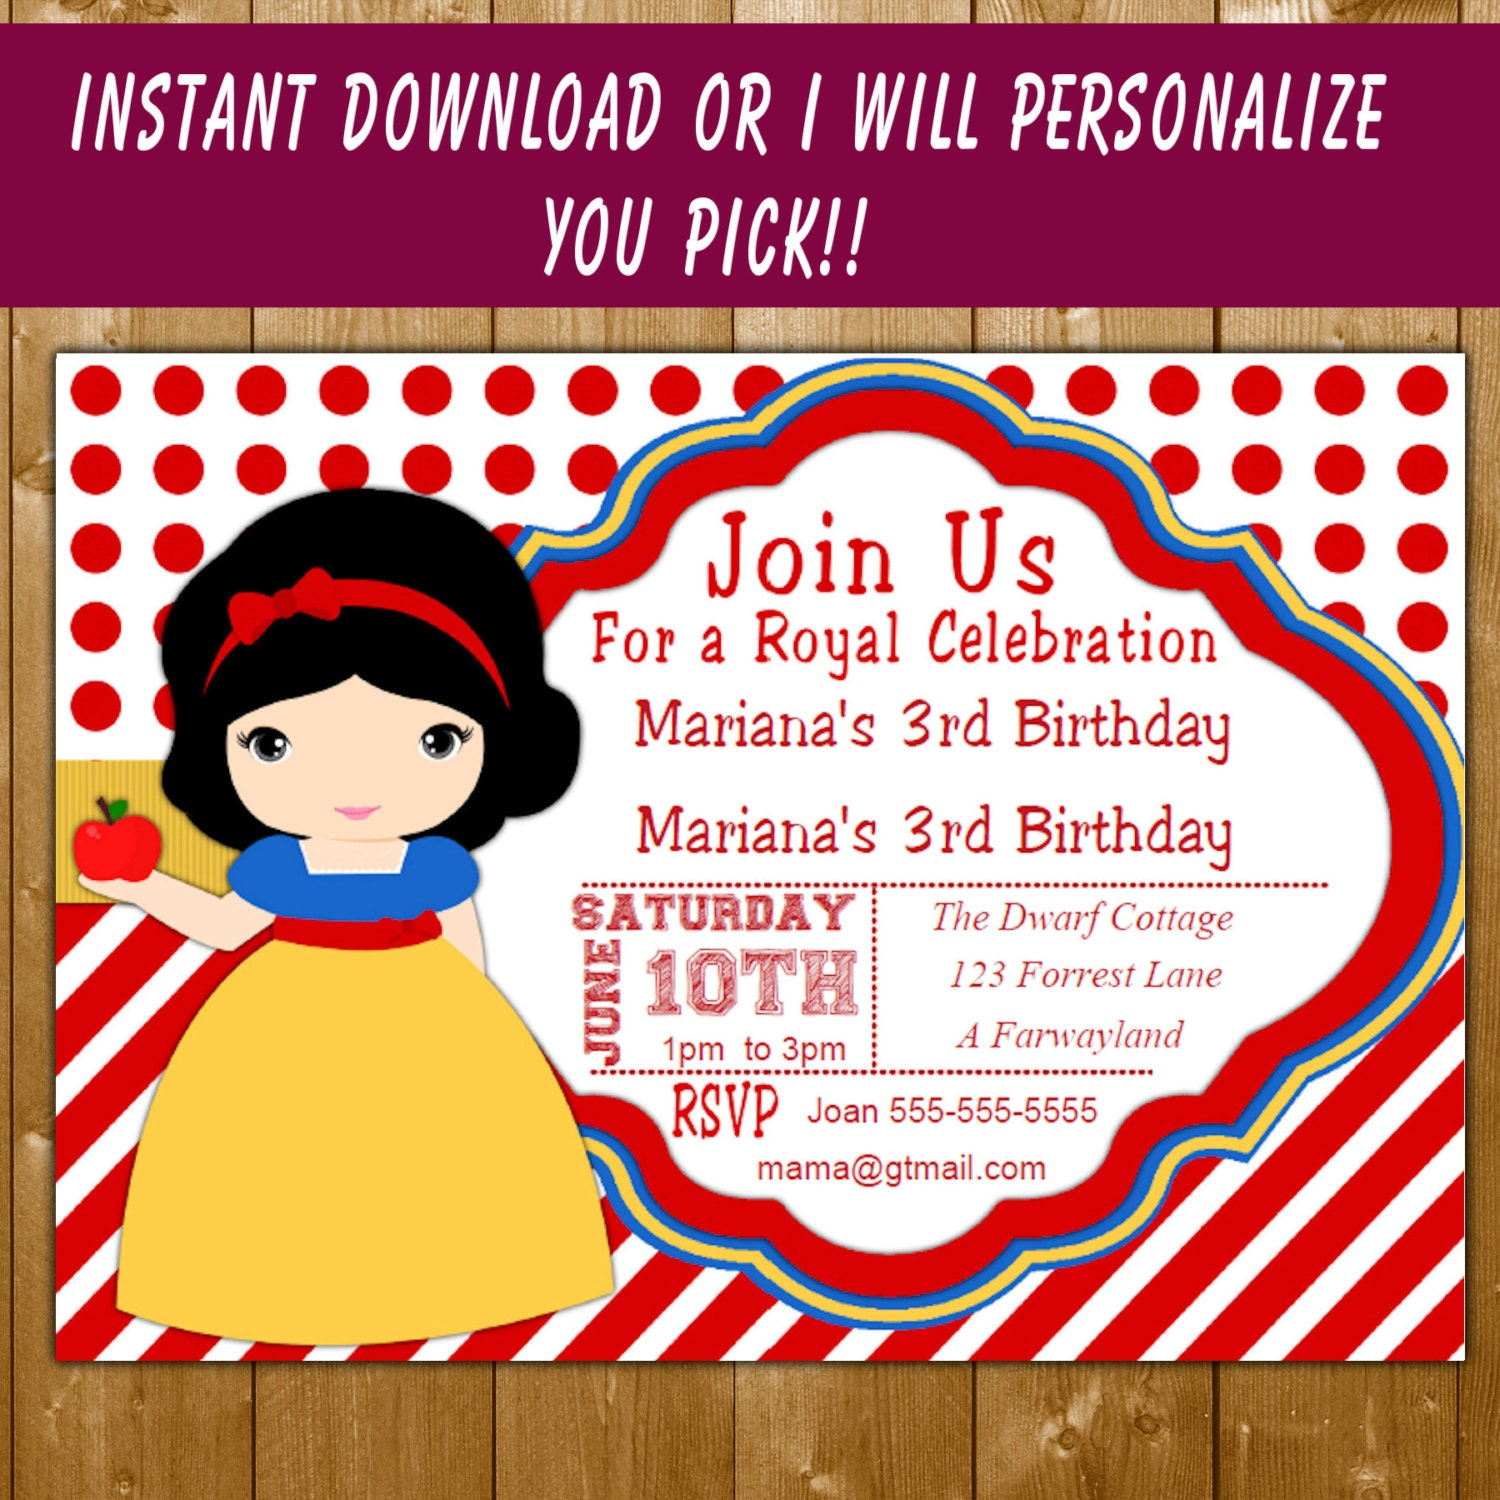 Princess invitation funpartysupply snow white invitation princess snow white birthday invitation birthday party invitation personalized girl invitation free thank you note filmwisefo